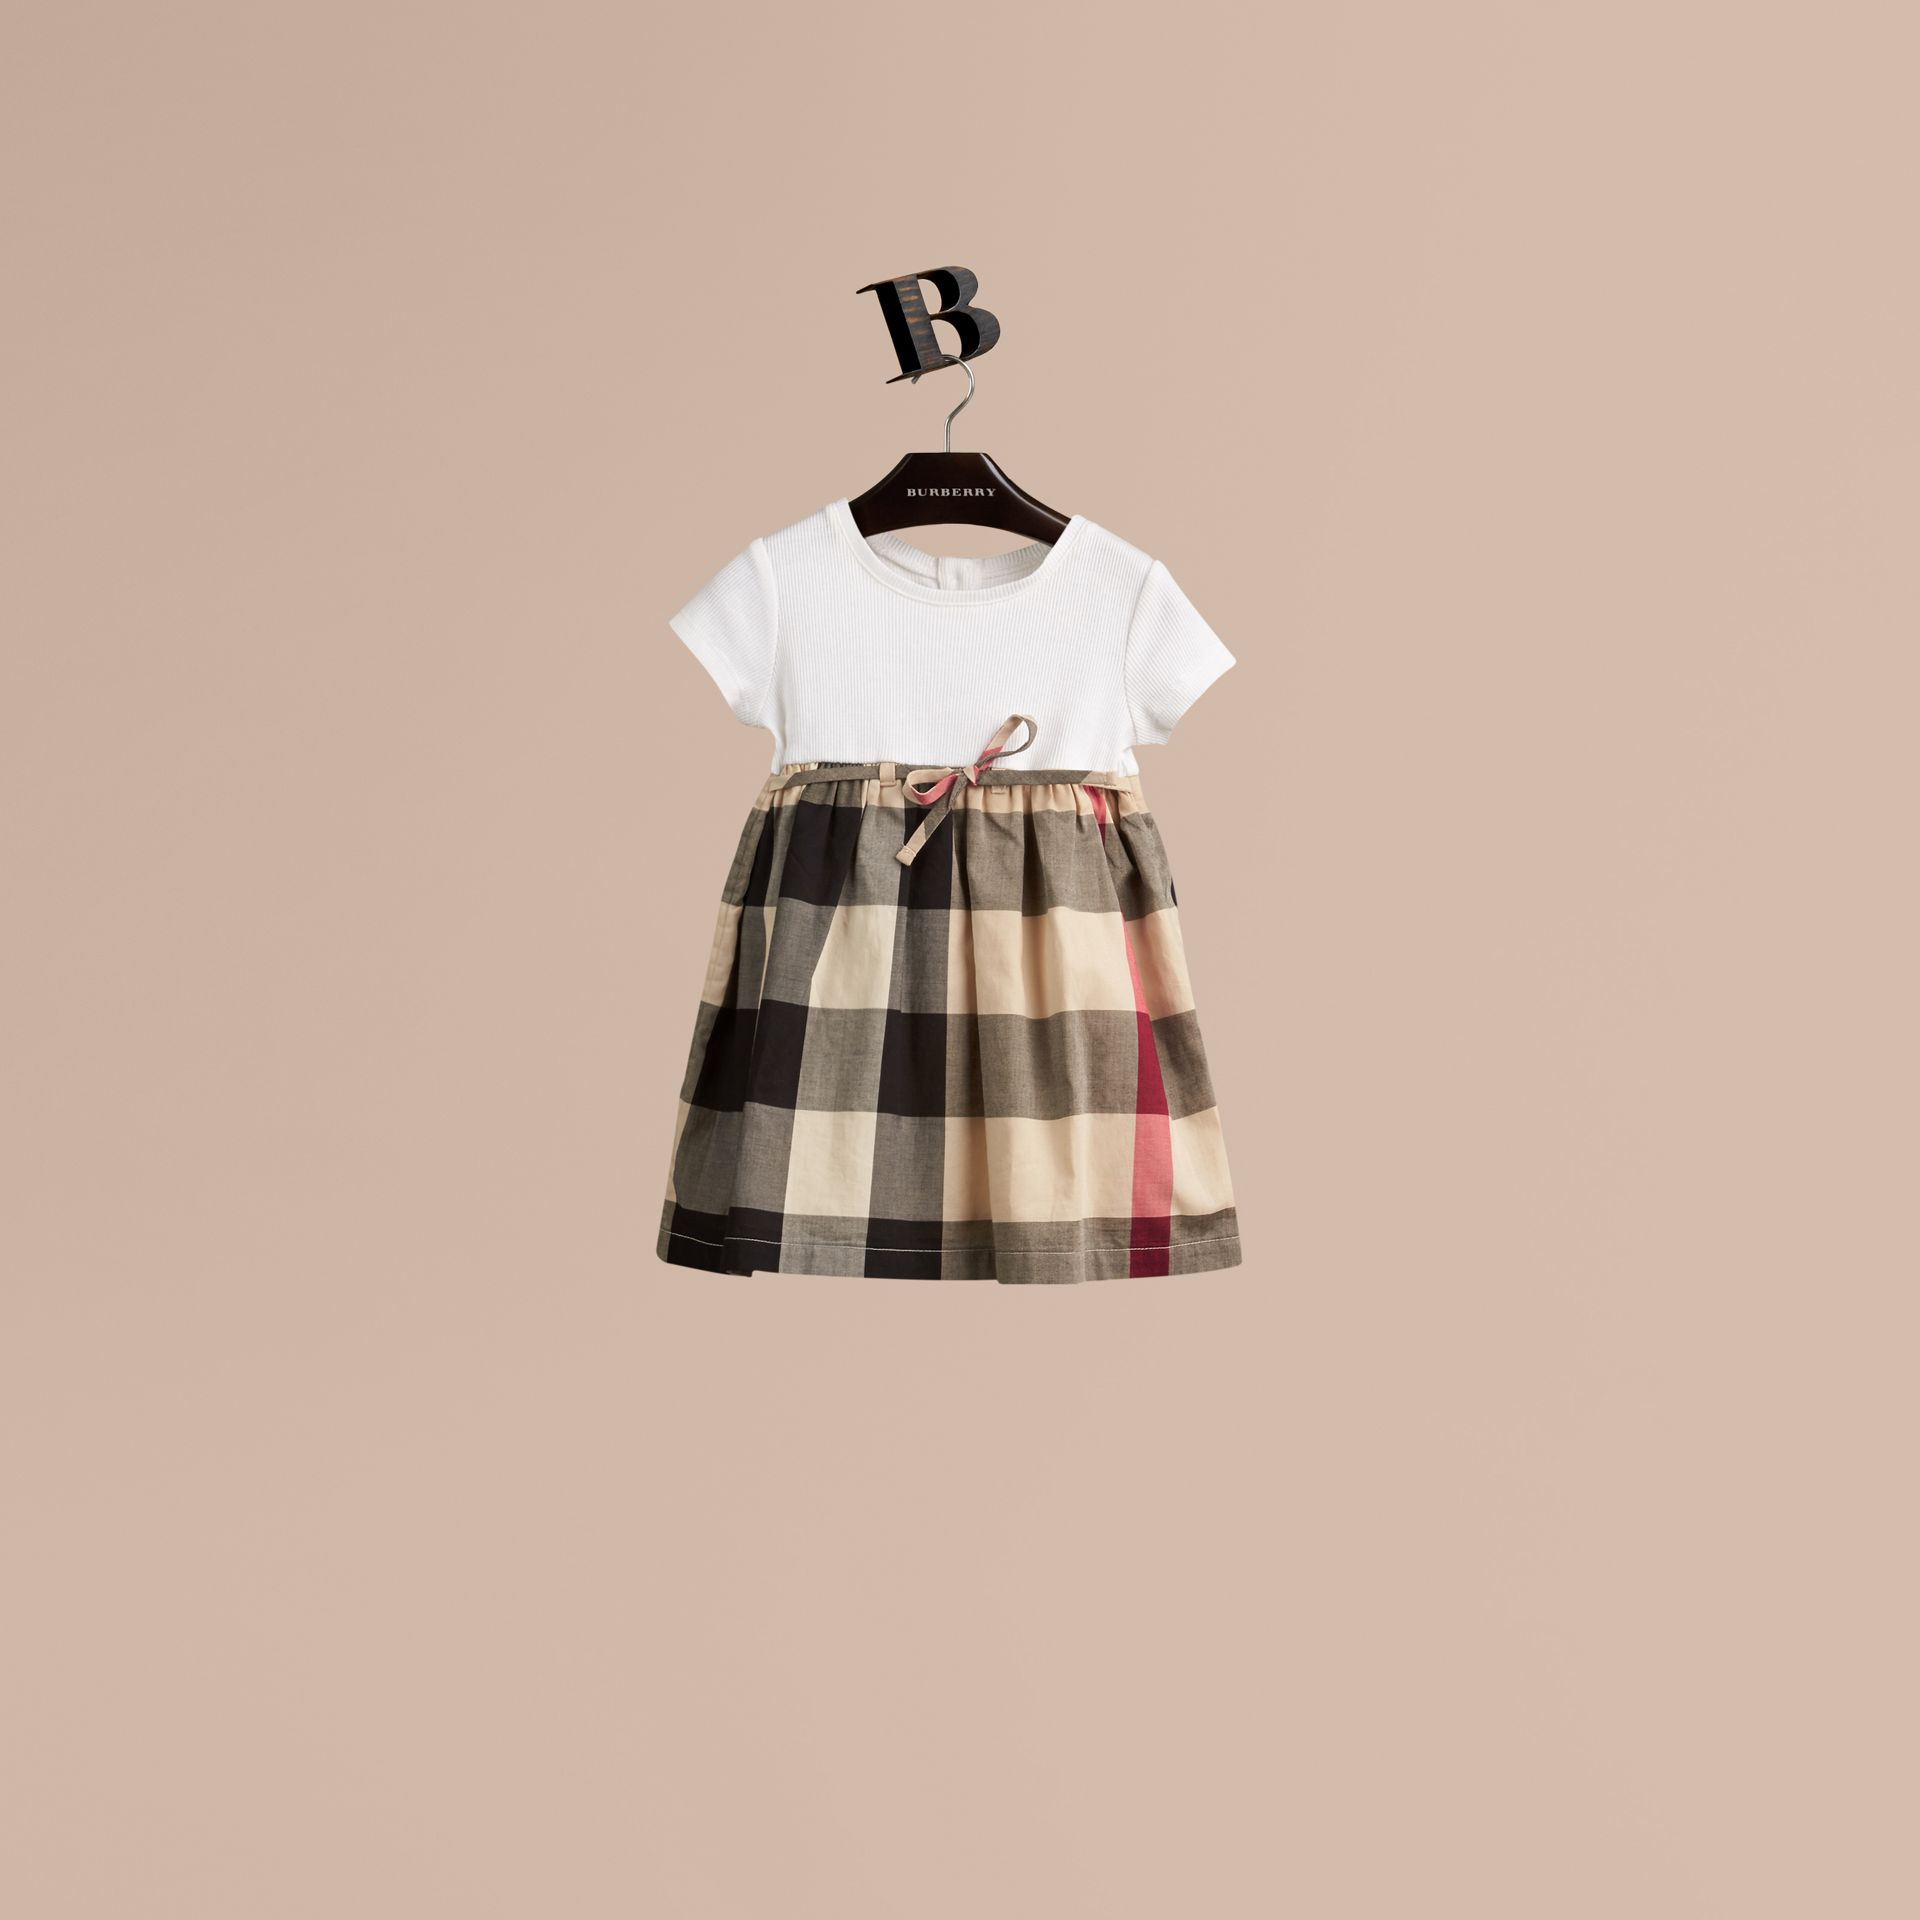 New classic check Check Cotton T-Shirt Dress - gallery image 1